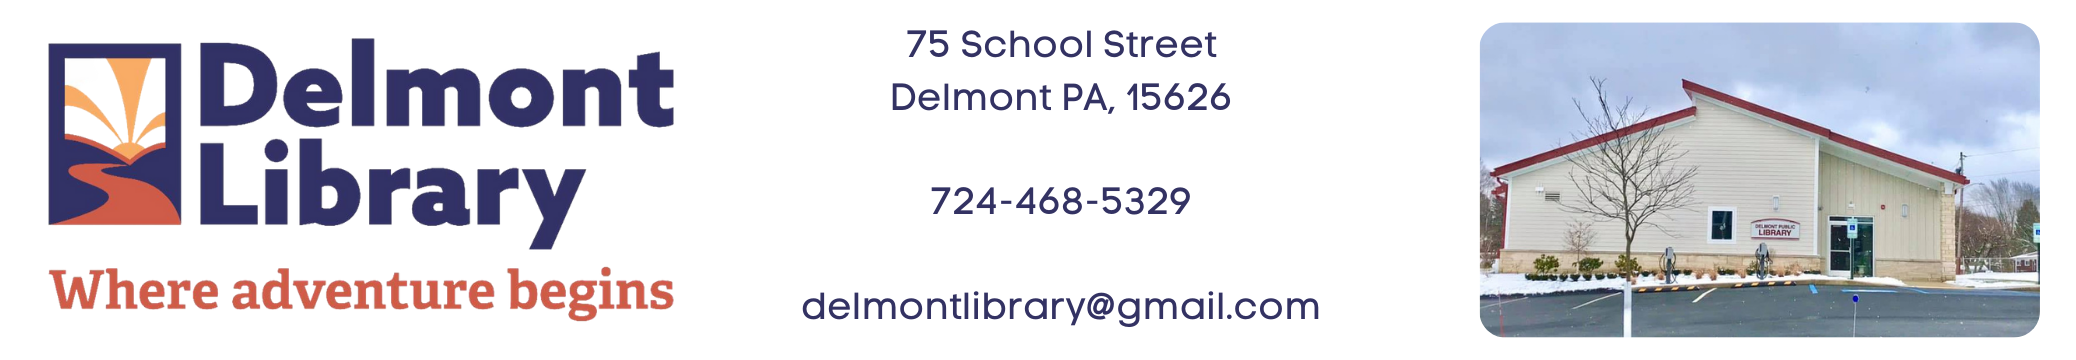 Delmont Library